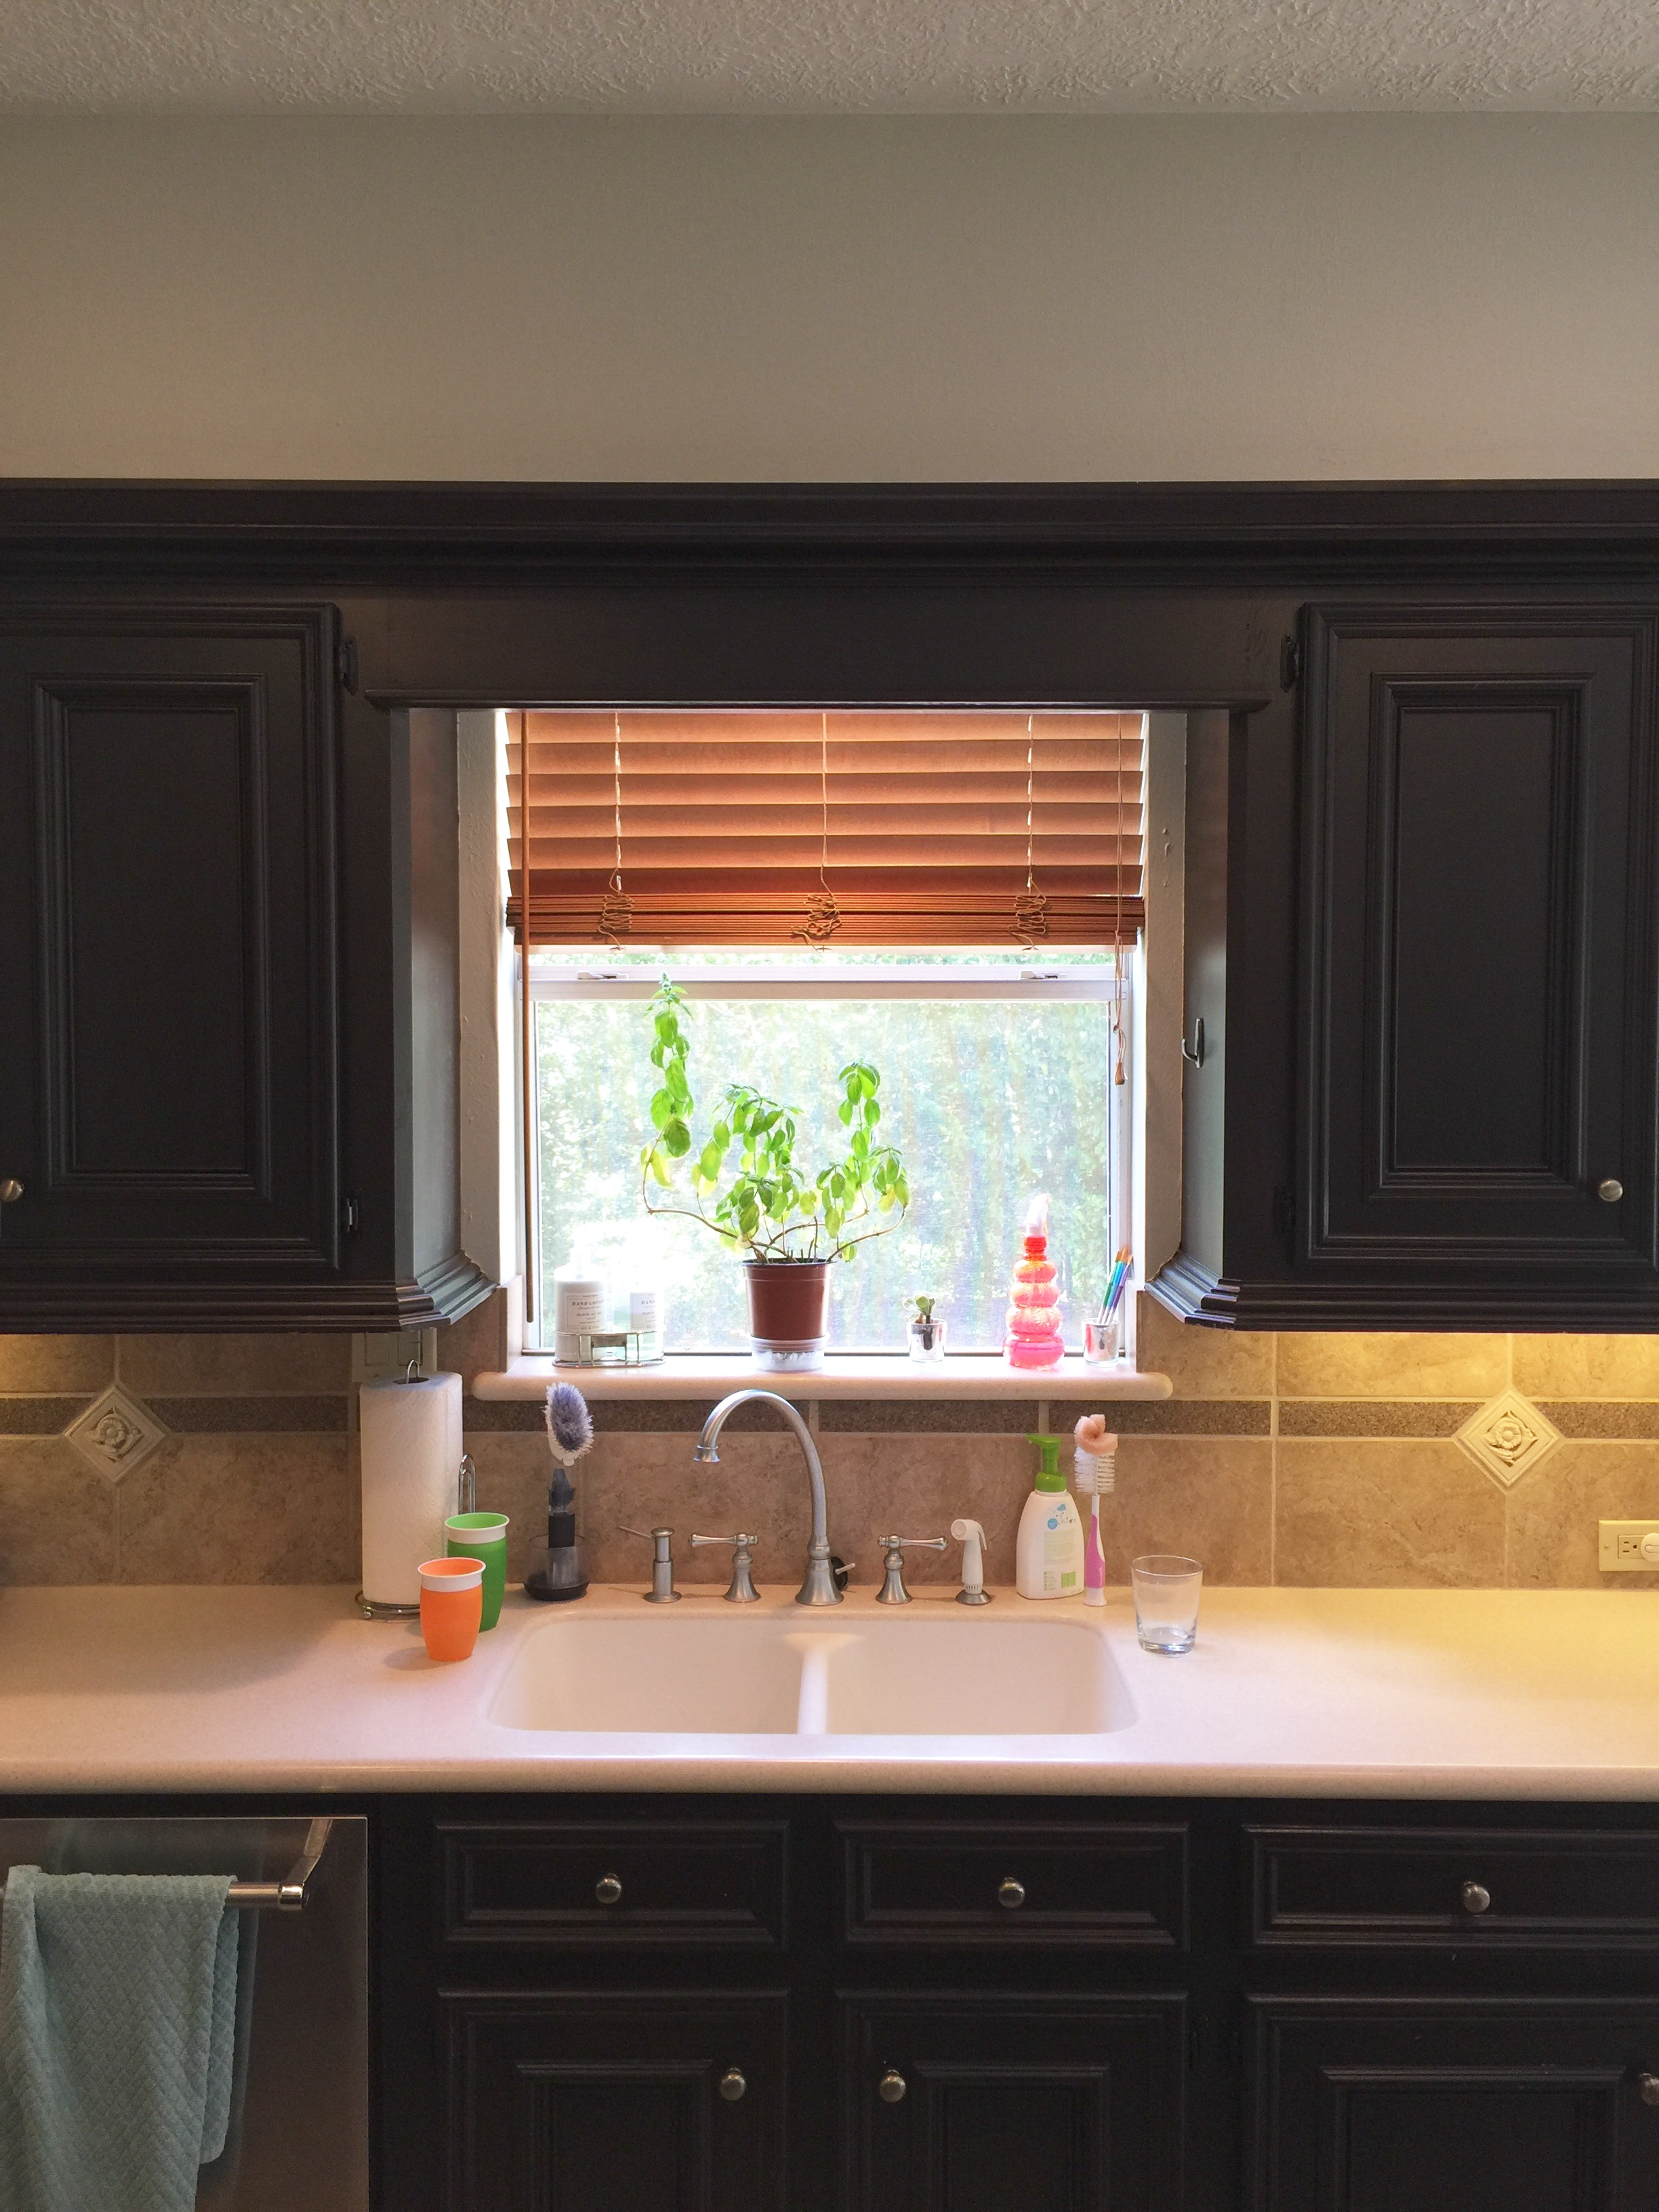 Before image- Kitchen remodel with existing cabinetry and furr down above.